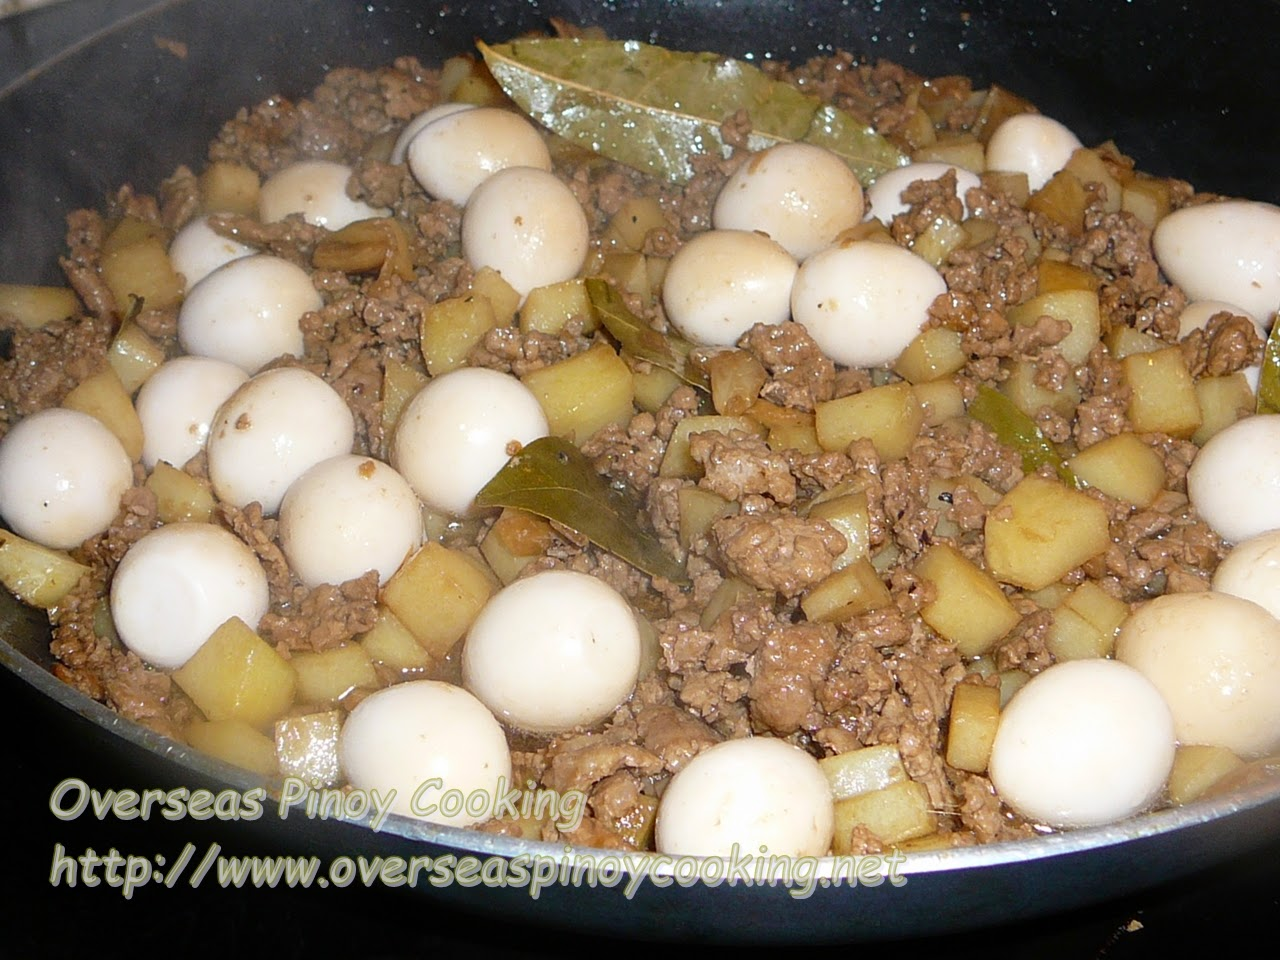 Ground Pork Adobo with Quail Eggs - Cooking Procedure